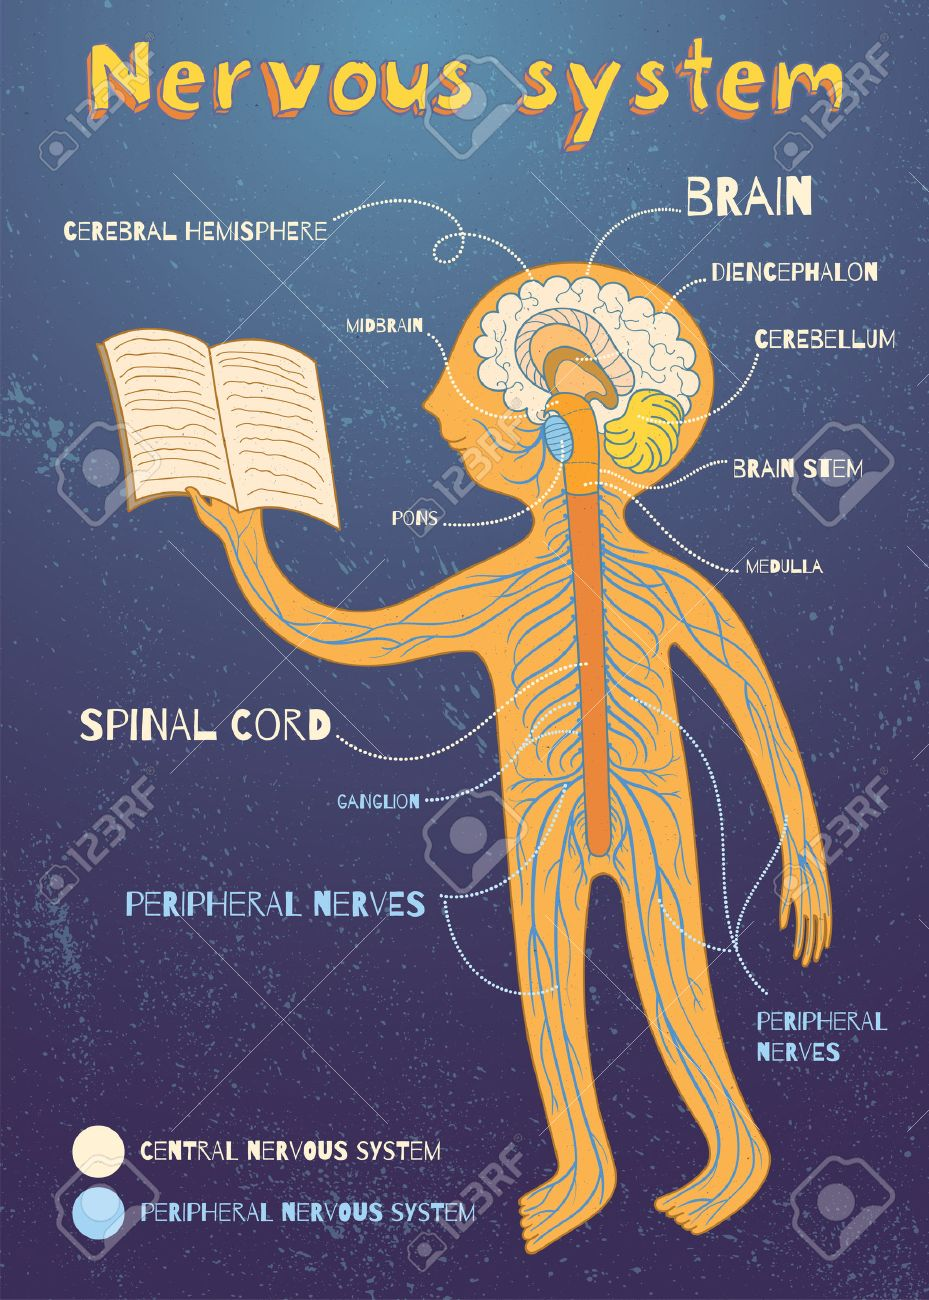 Central Nervous System Stock Photos. Royalty Free Central Nervous ...